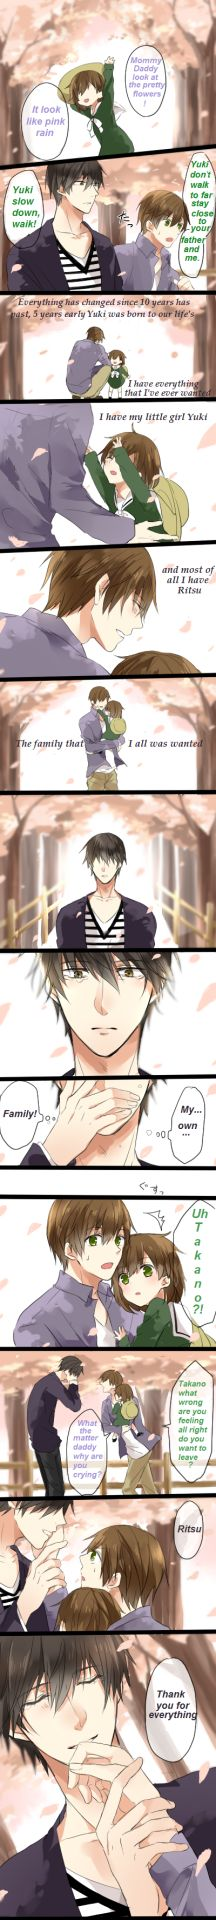 Ritsu x Takano Comic Credit goes to original artist